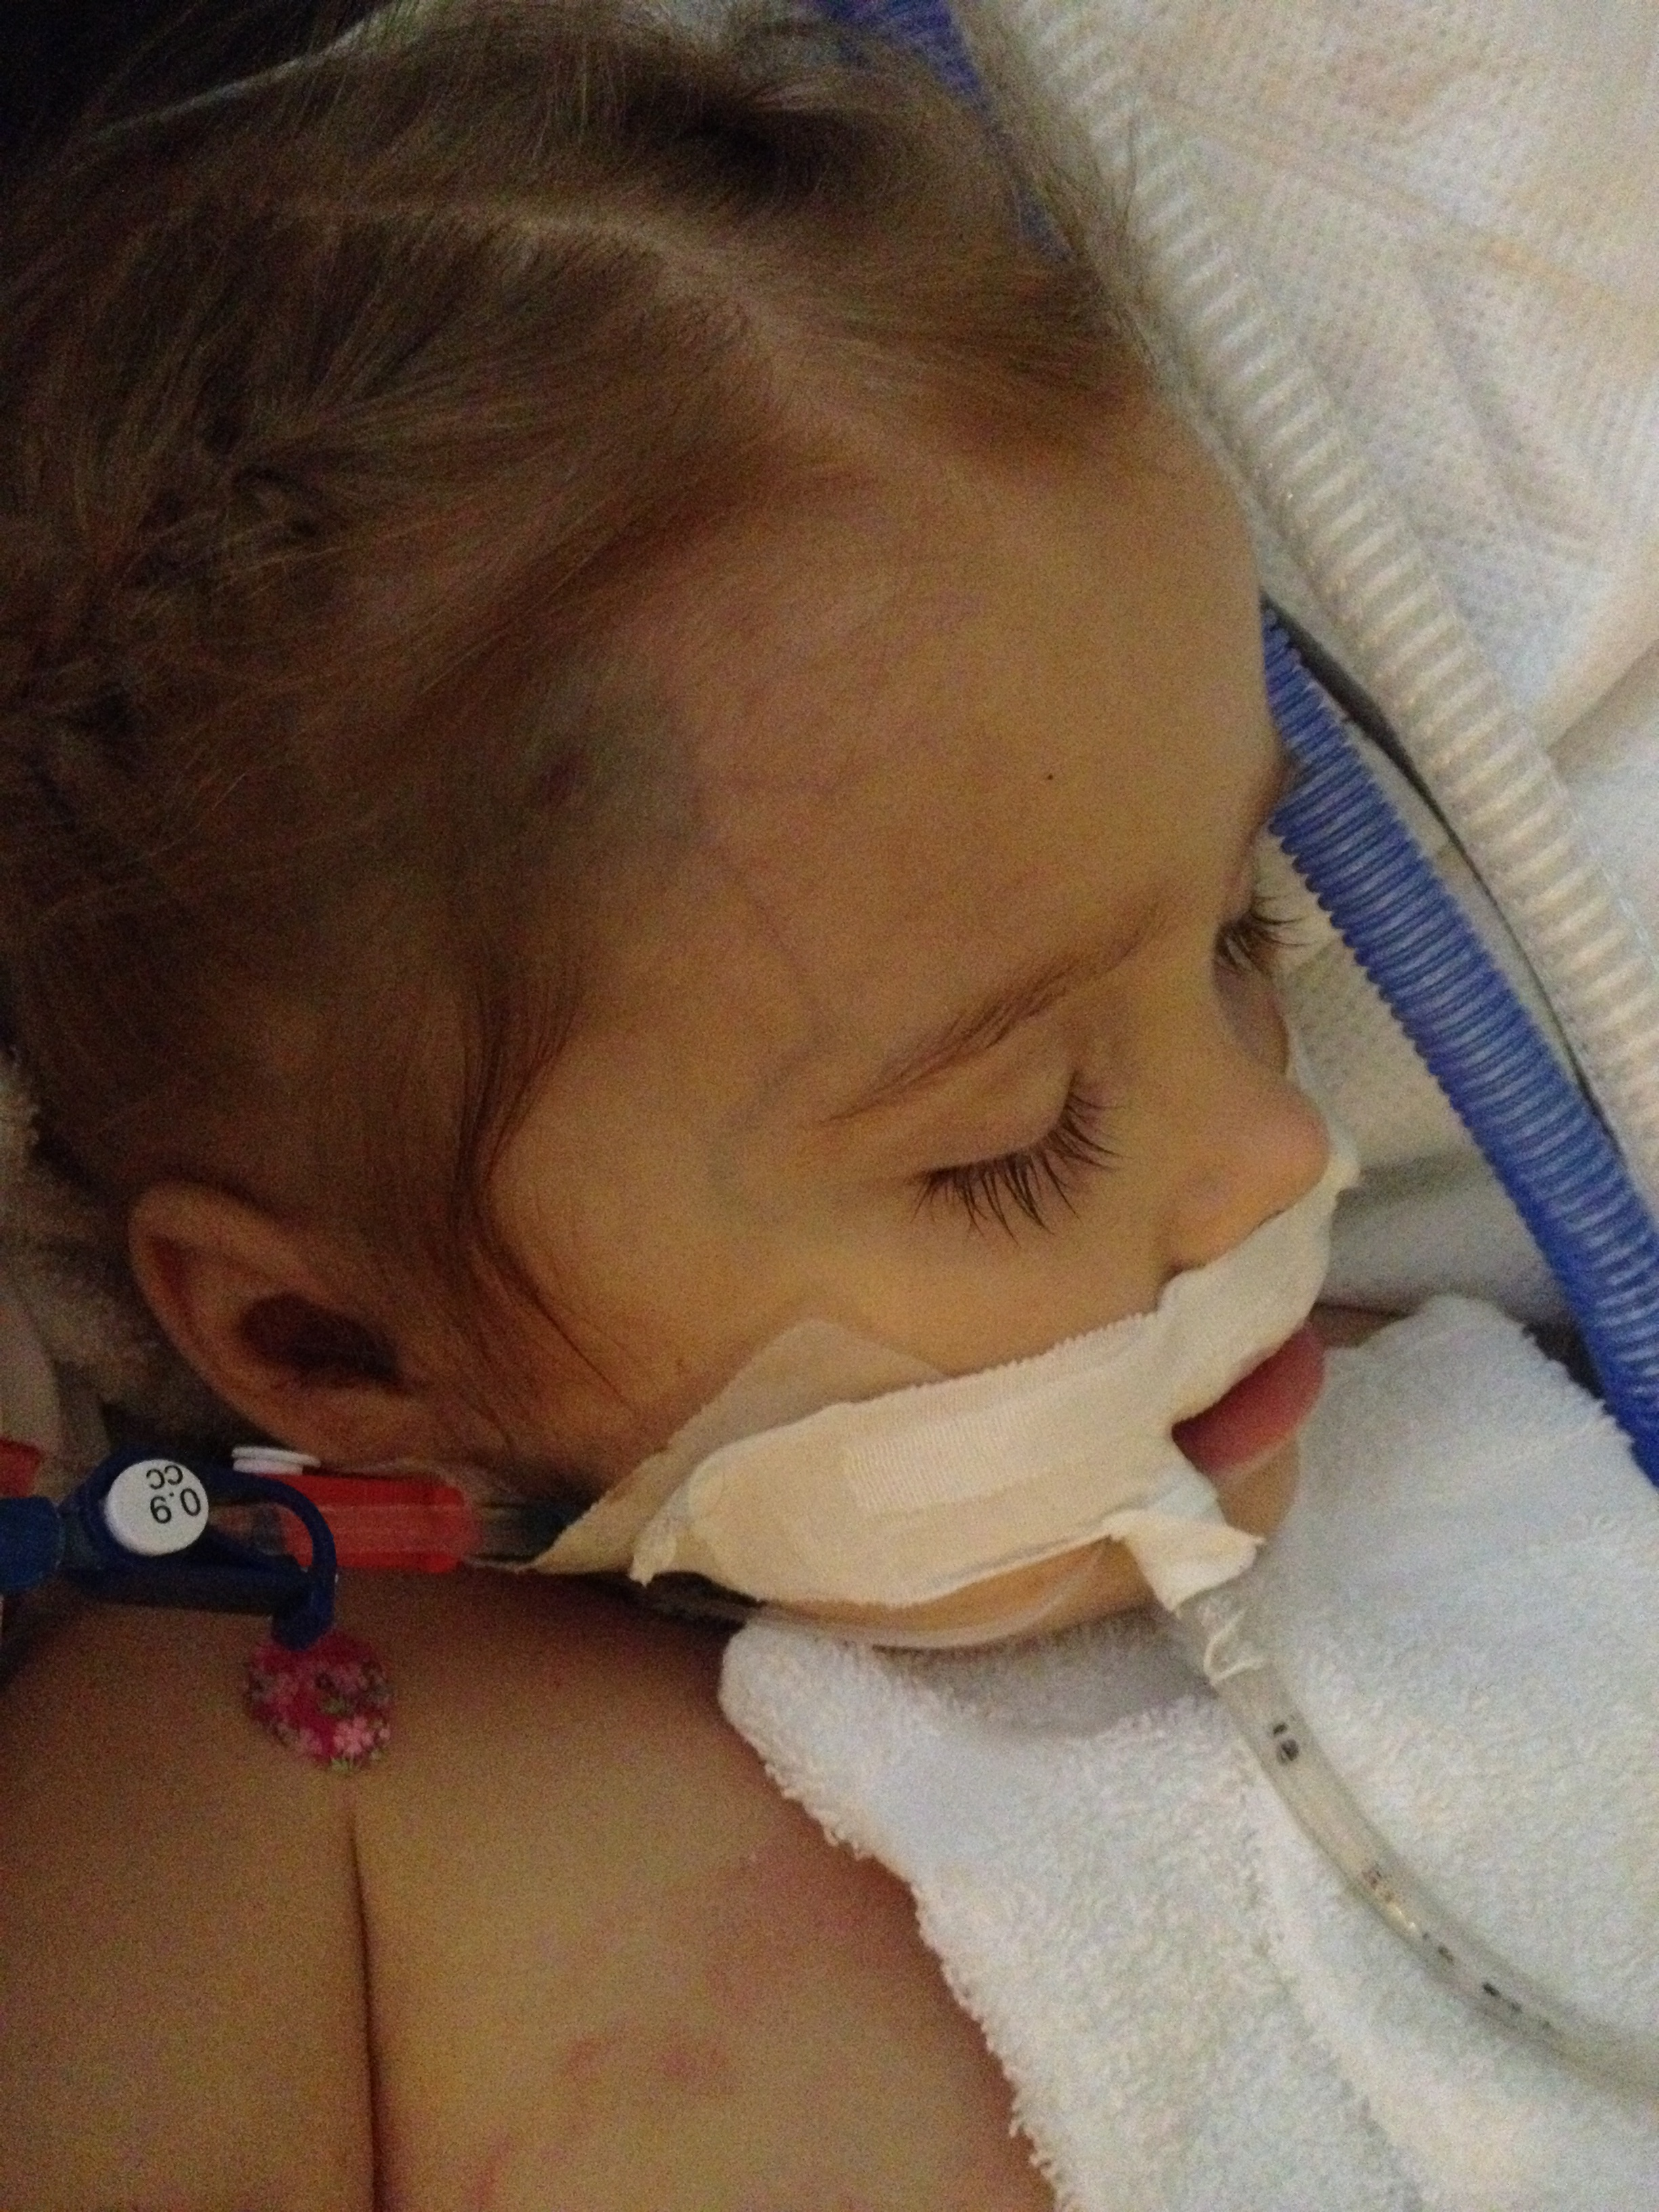 8/17/13 sweet baby Ainsley, receiving a dose of PEG, pegasparagenase a form of chemotherapy.